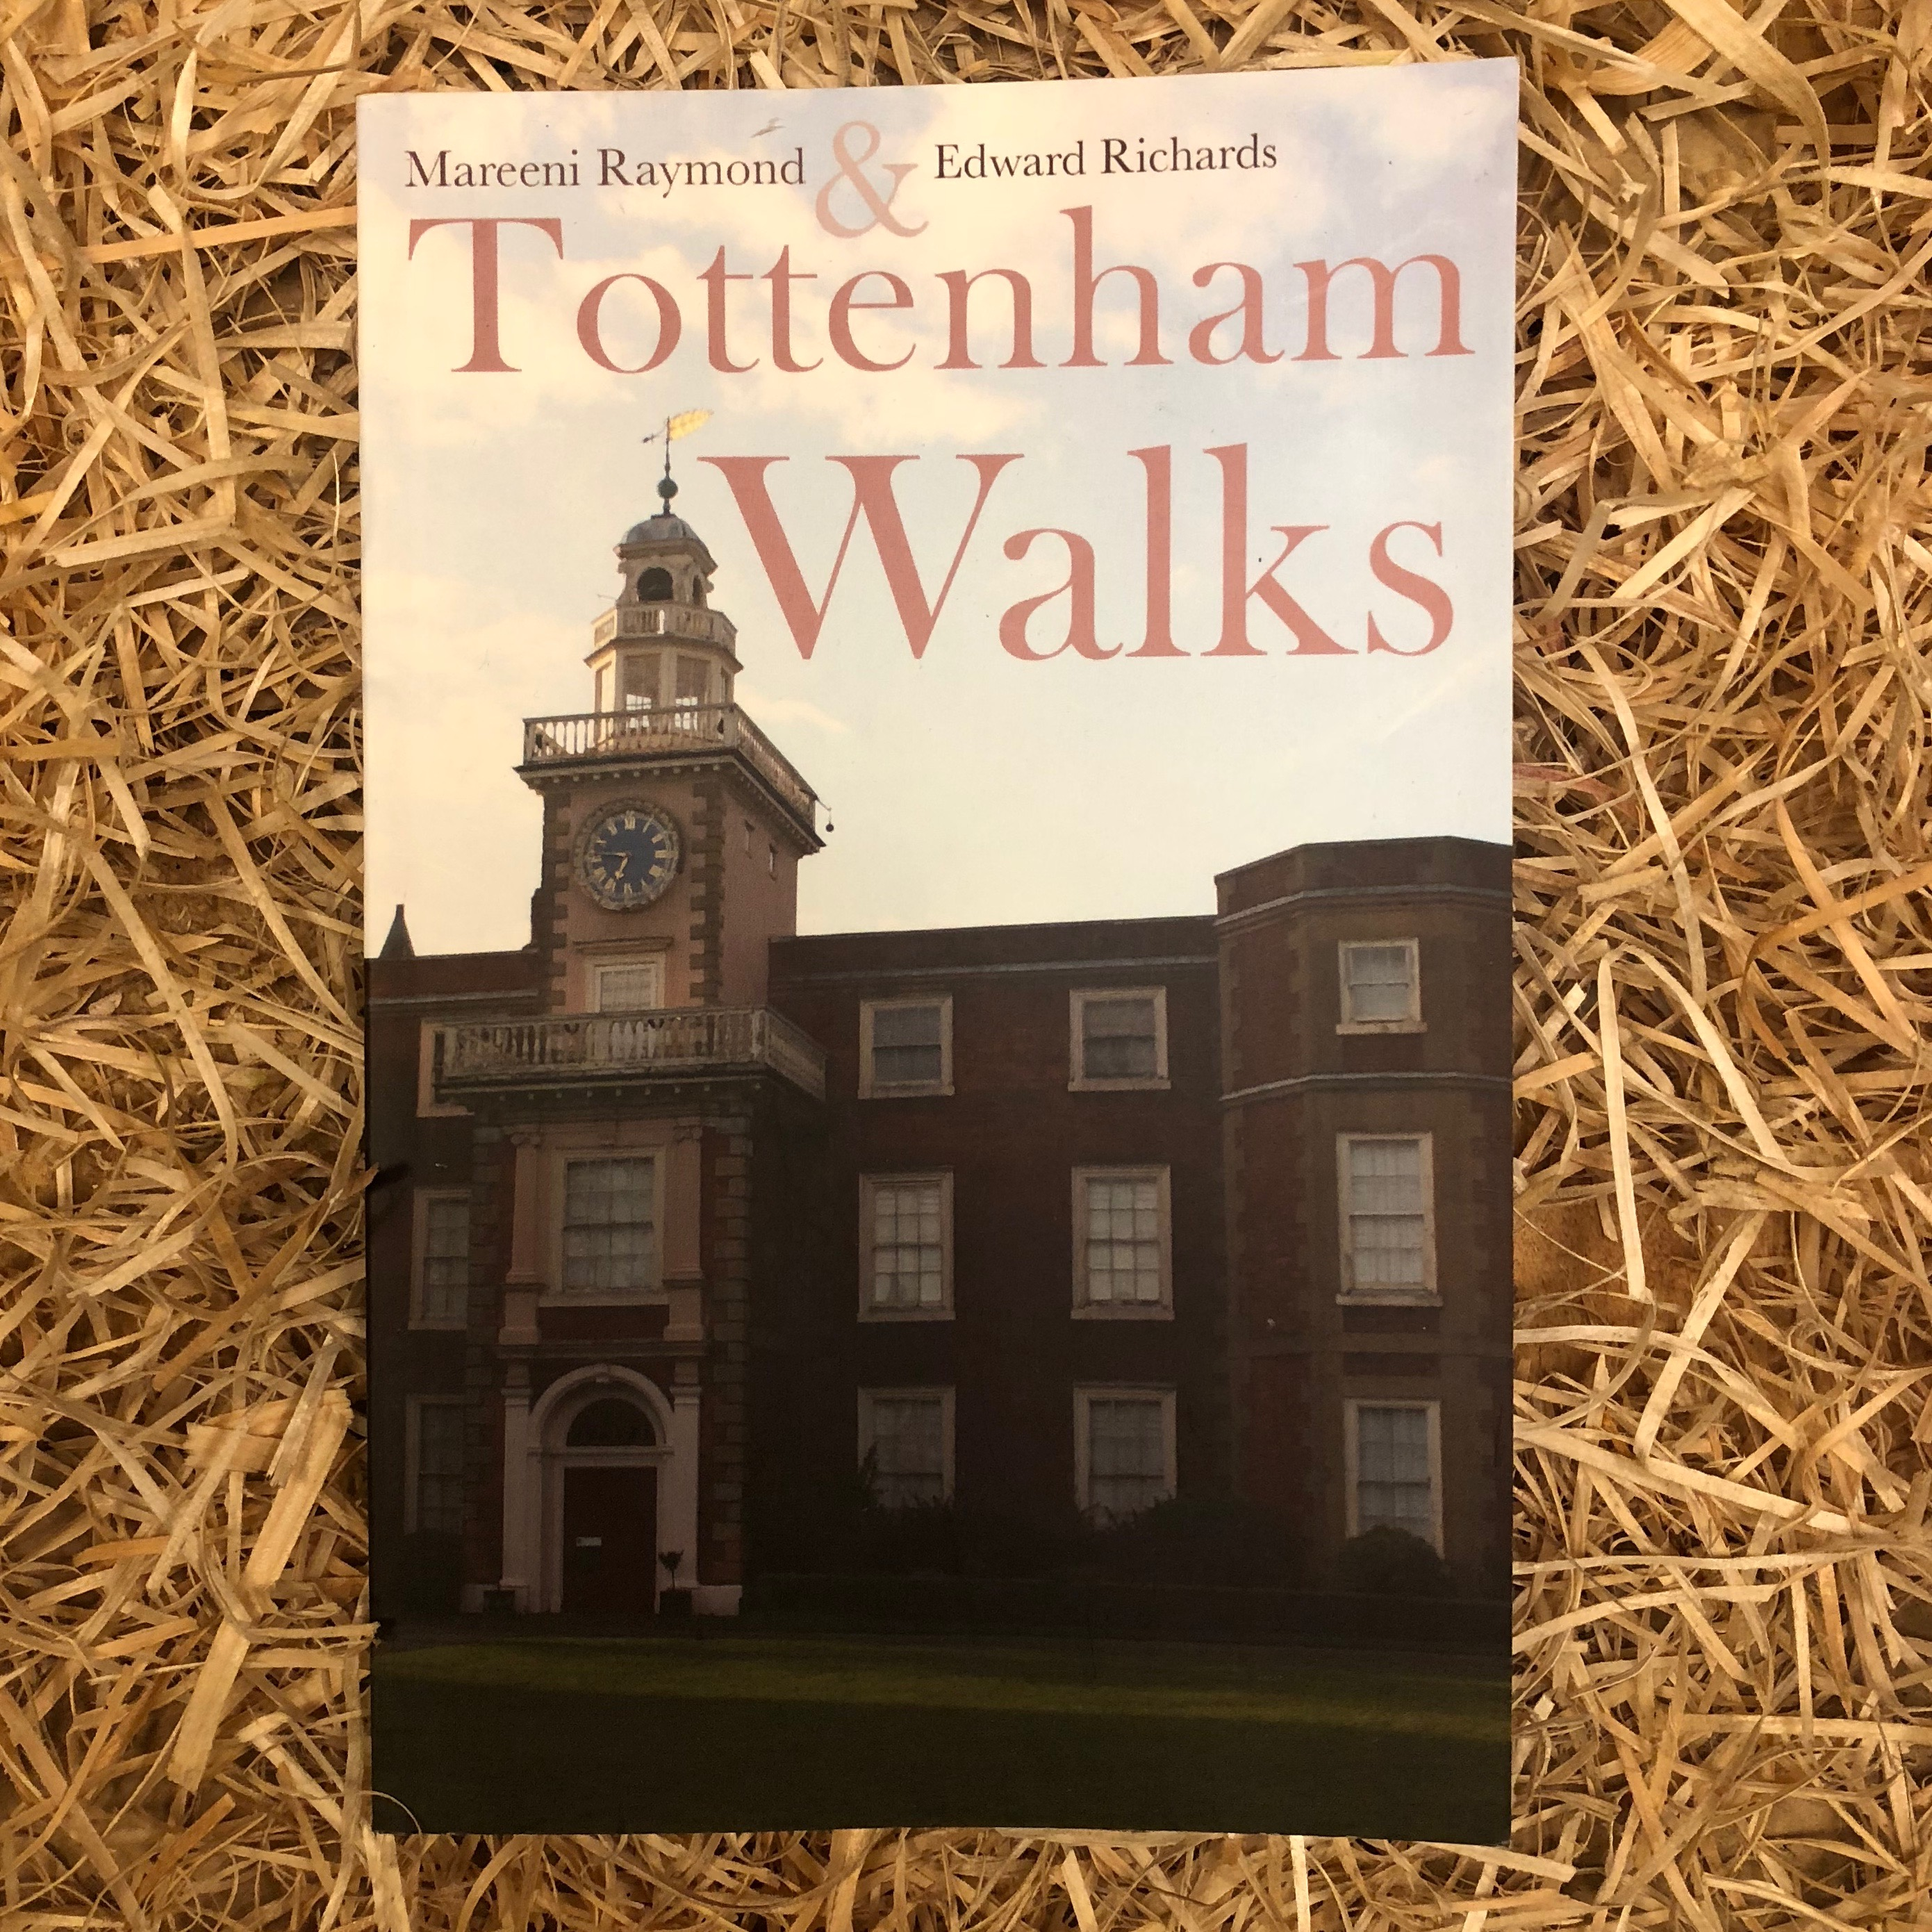 Tottenham Walks, Edward Richards & Mareeni Raymond